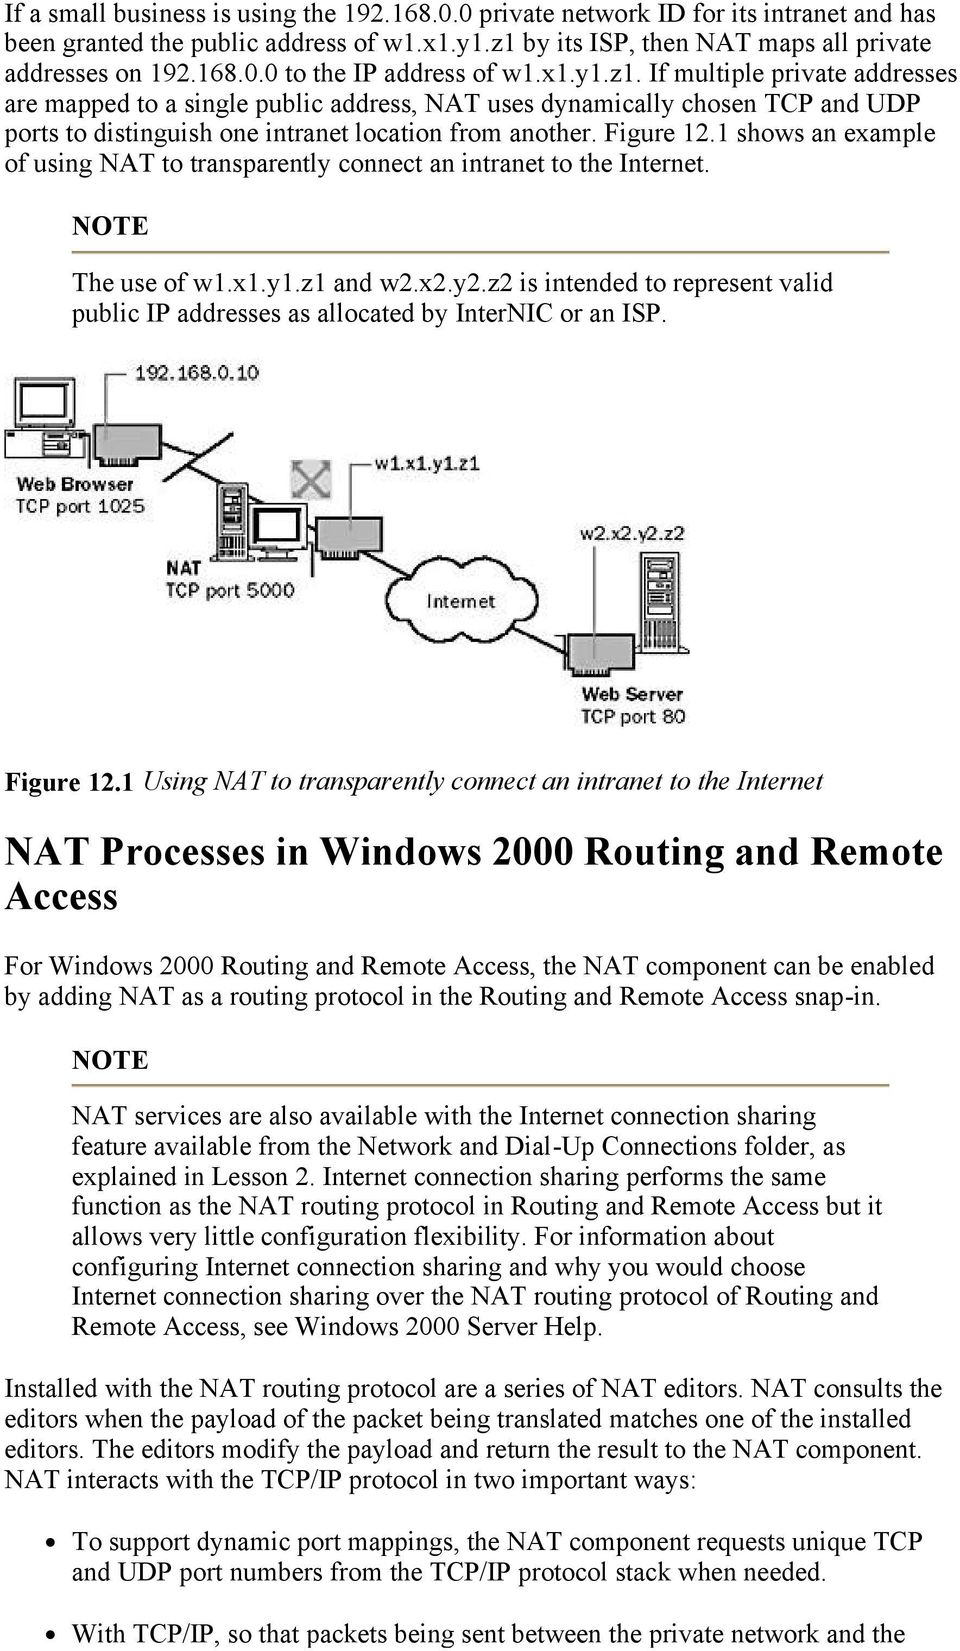 1 shows an example of using NAT to transparently connect an intranet to the Internet. NOTE The use of w1.x1.y1.z1 and w2.x2.y2.